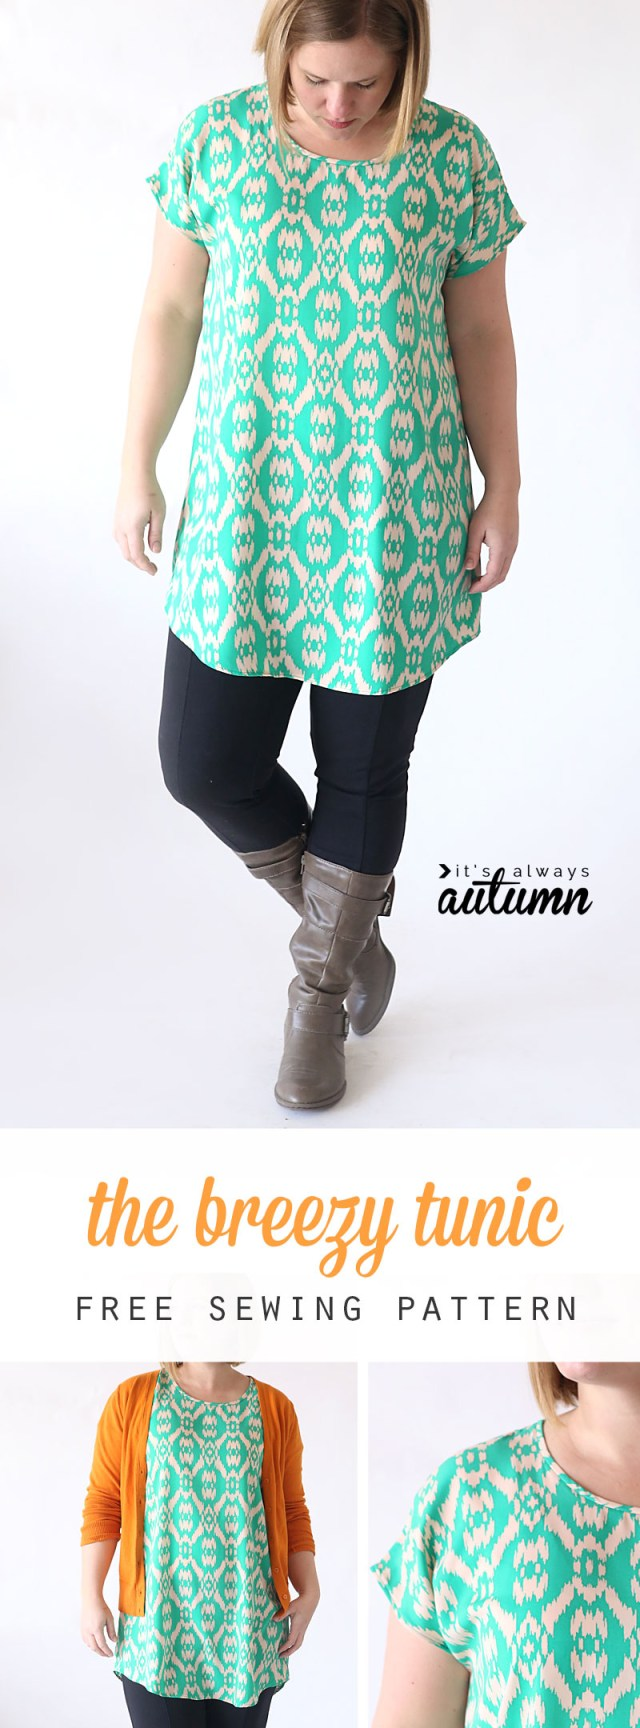 Free Plus Size Sewing Patterns The Breezy Tee Tunic Free Sewing Pattern Its Always Autumn